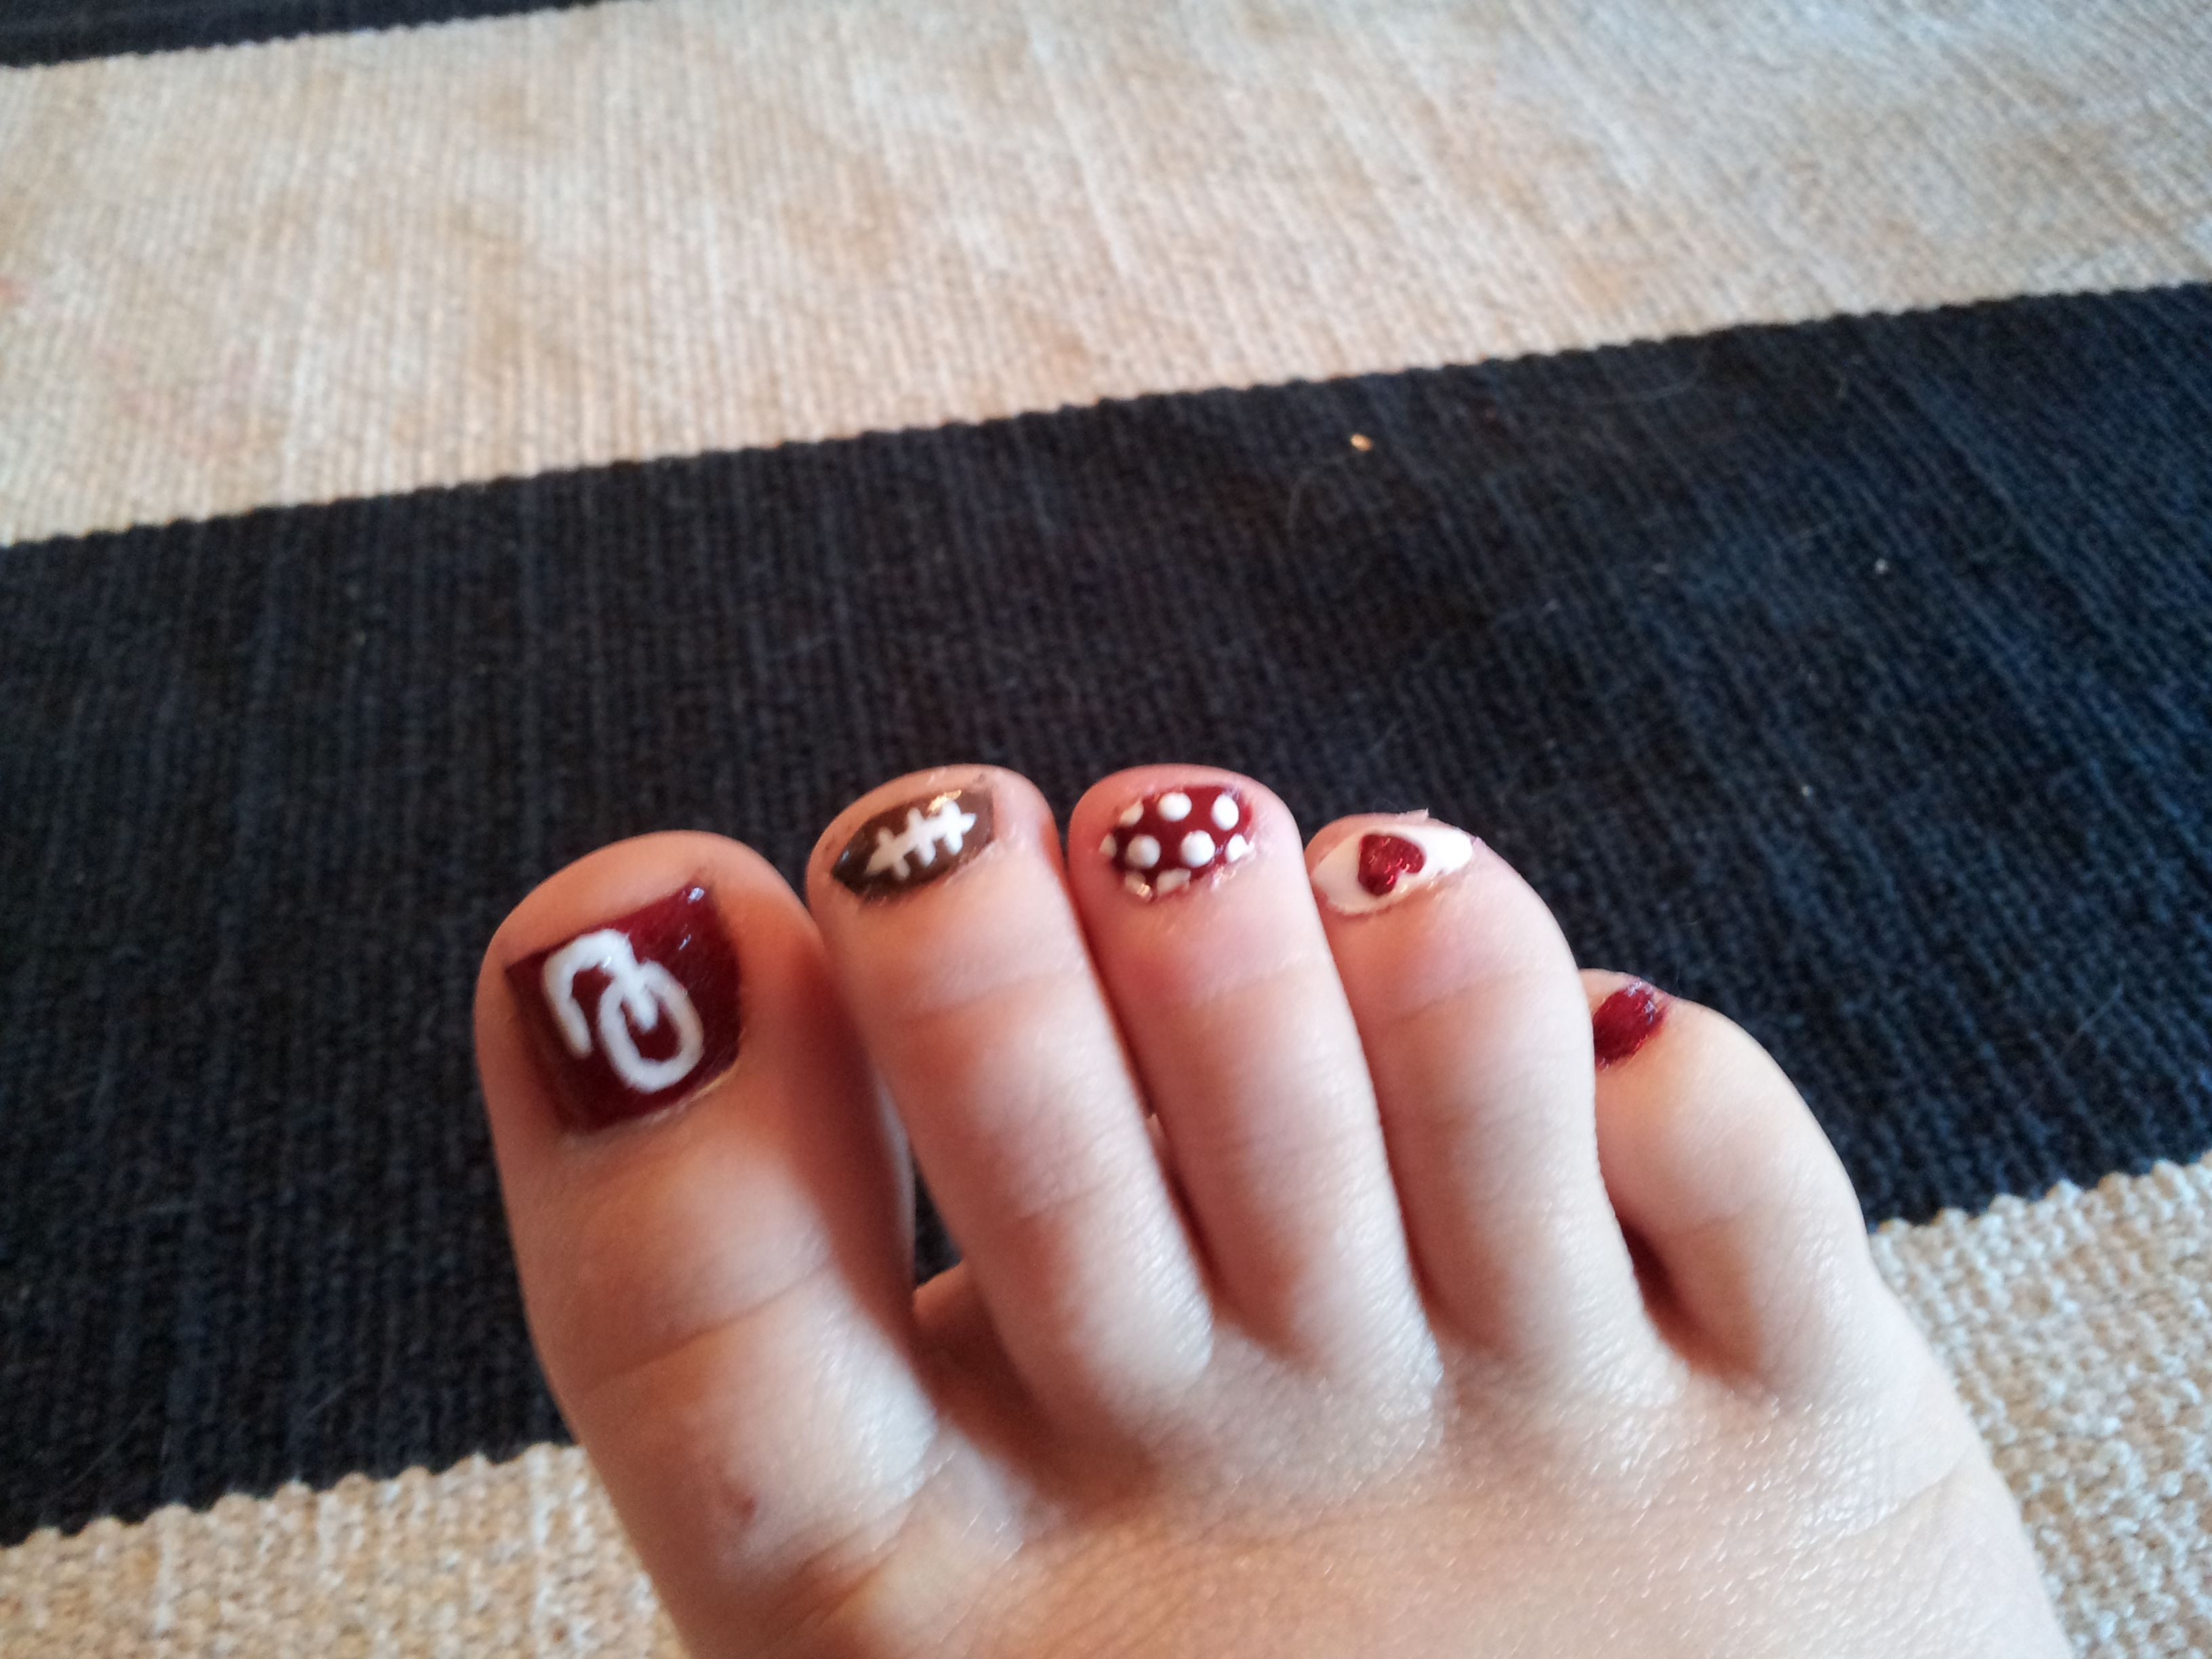 Polish Christmas 2020 Oklahoma i painted my toenails to show my support! #boomersooner #ou